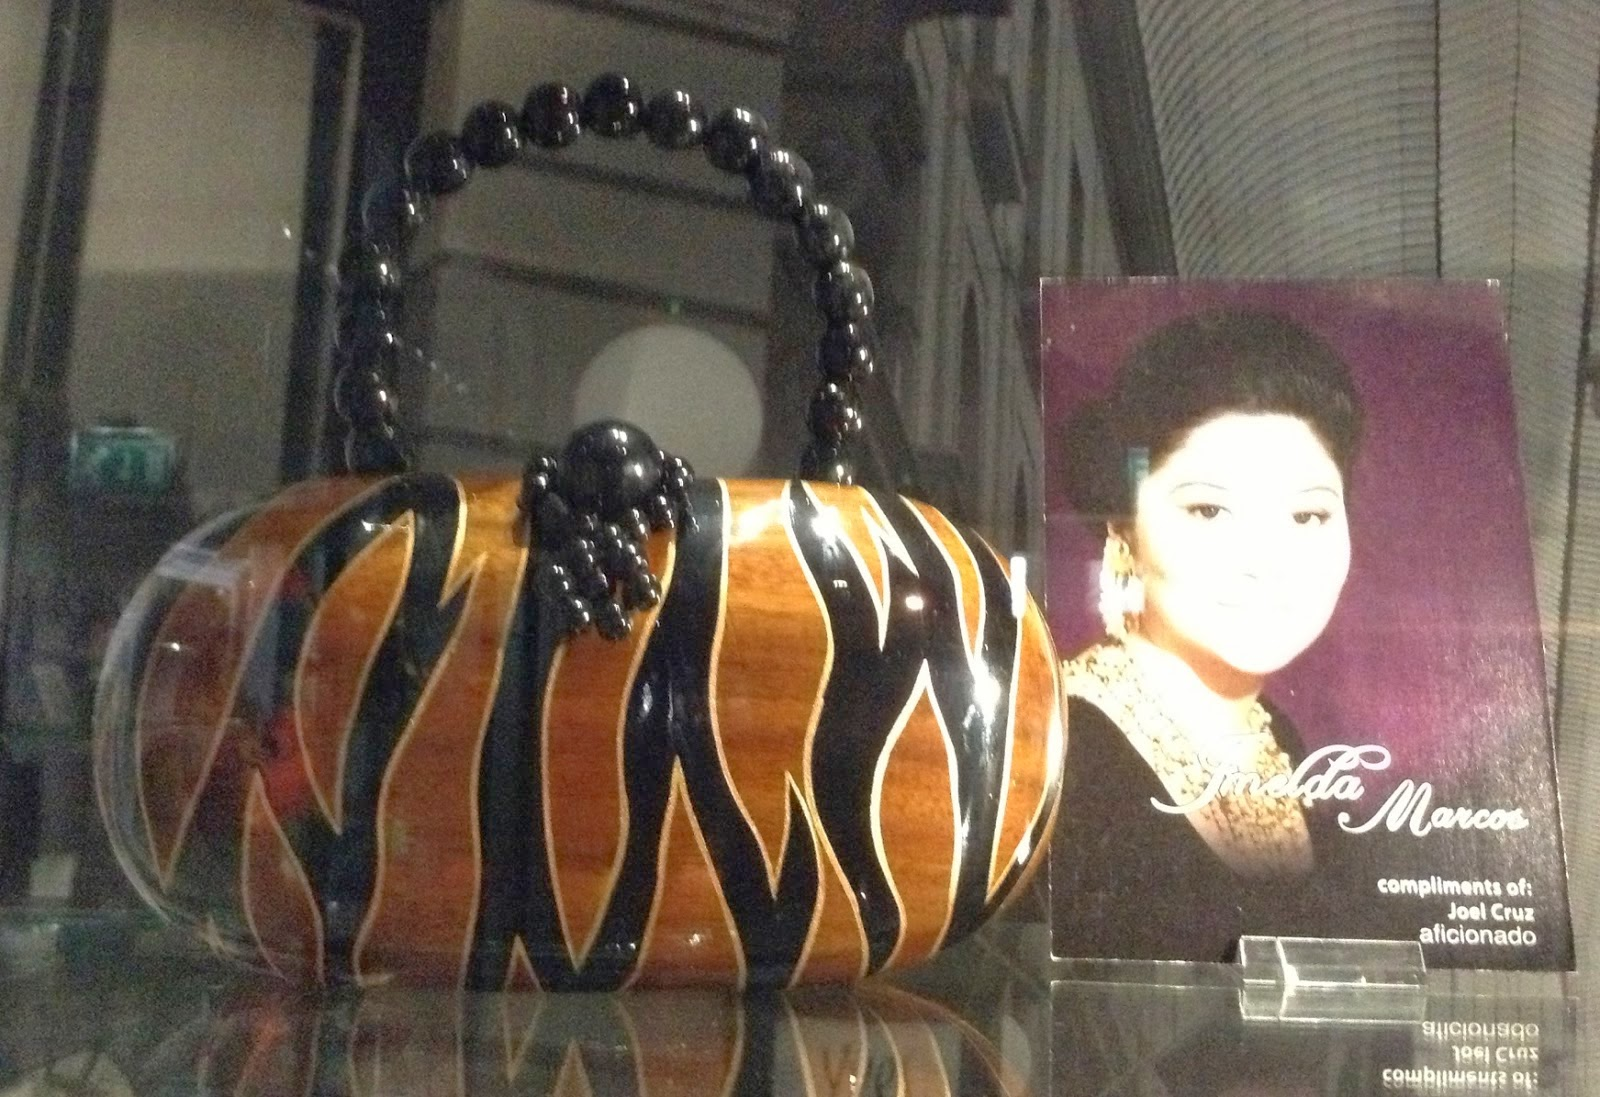 http://msmadge.blogspot.co.uk/2013/06/part-ii-museum-of-bags-purses-amsterdam.html